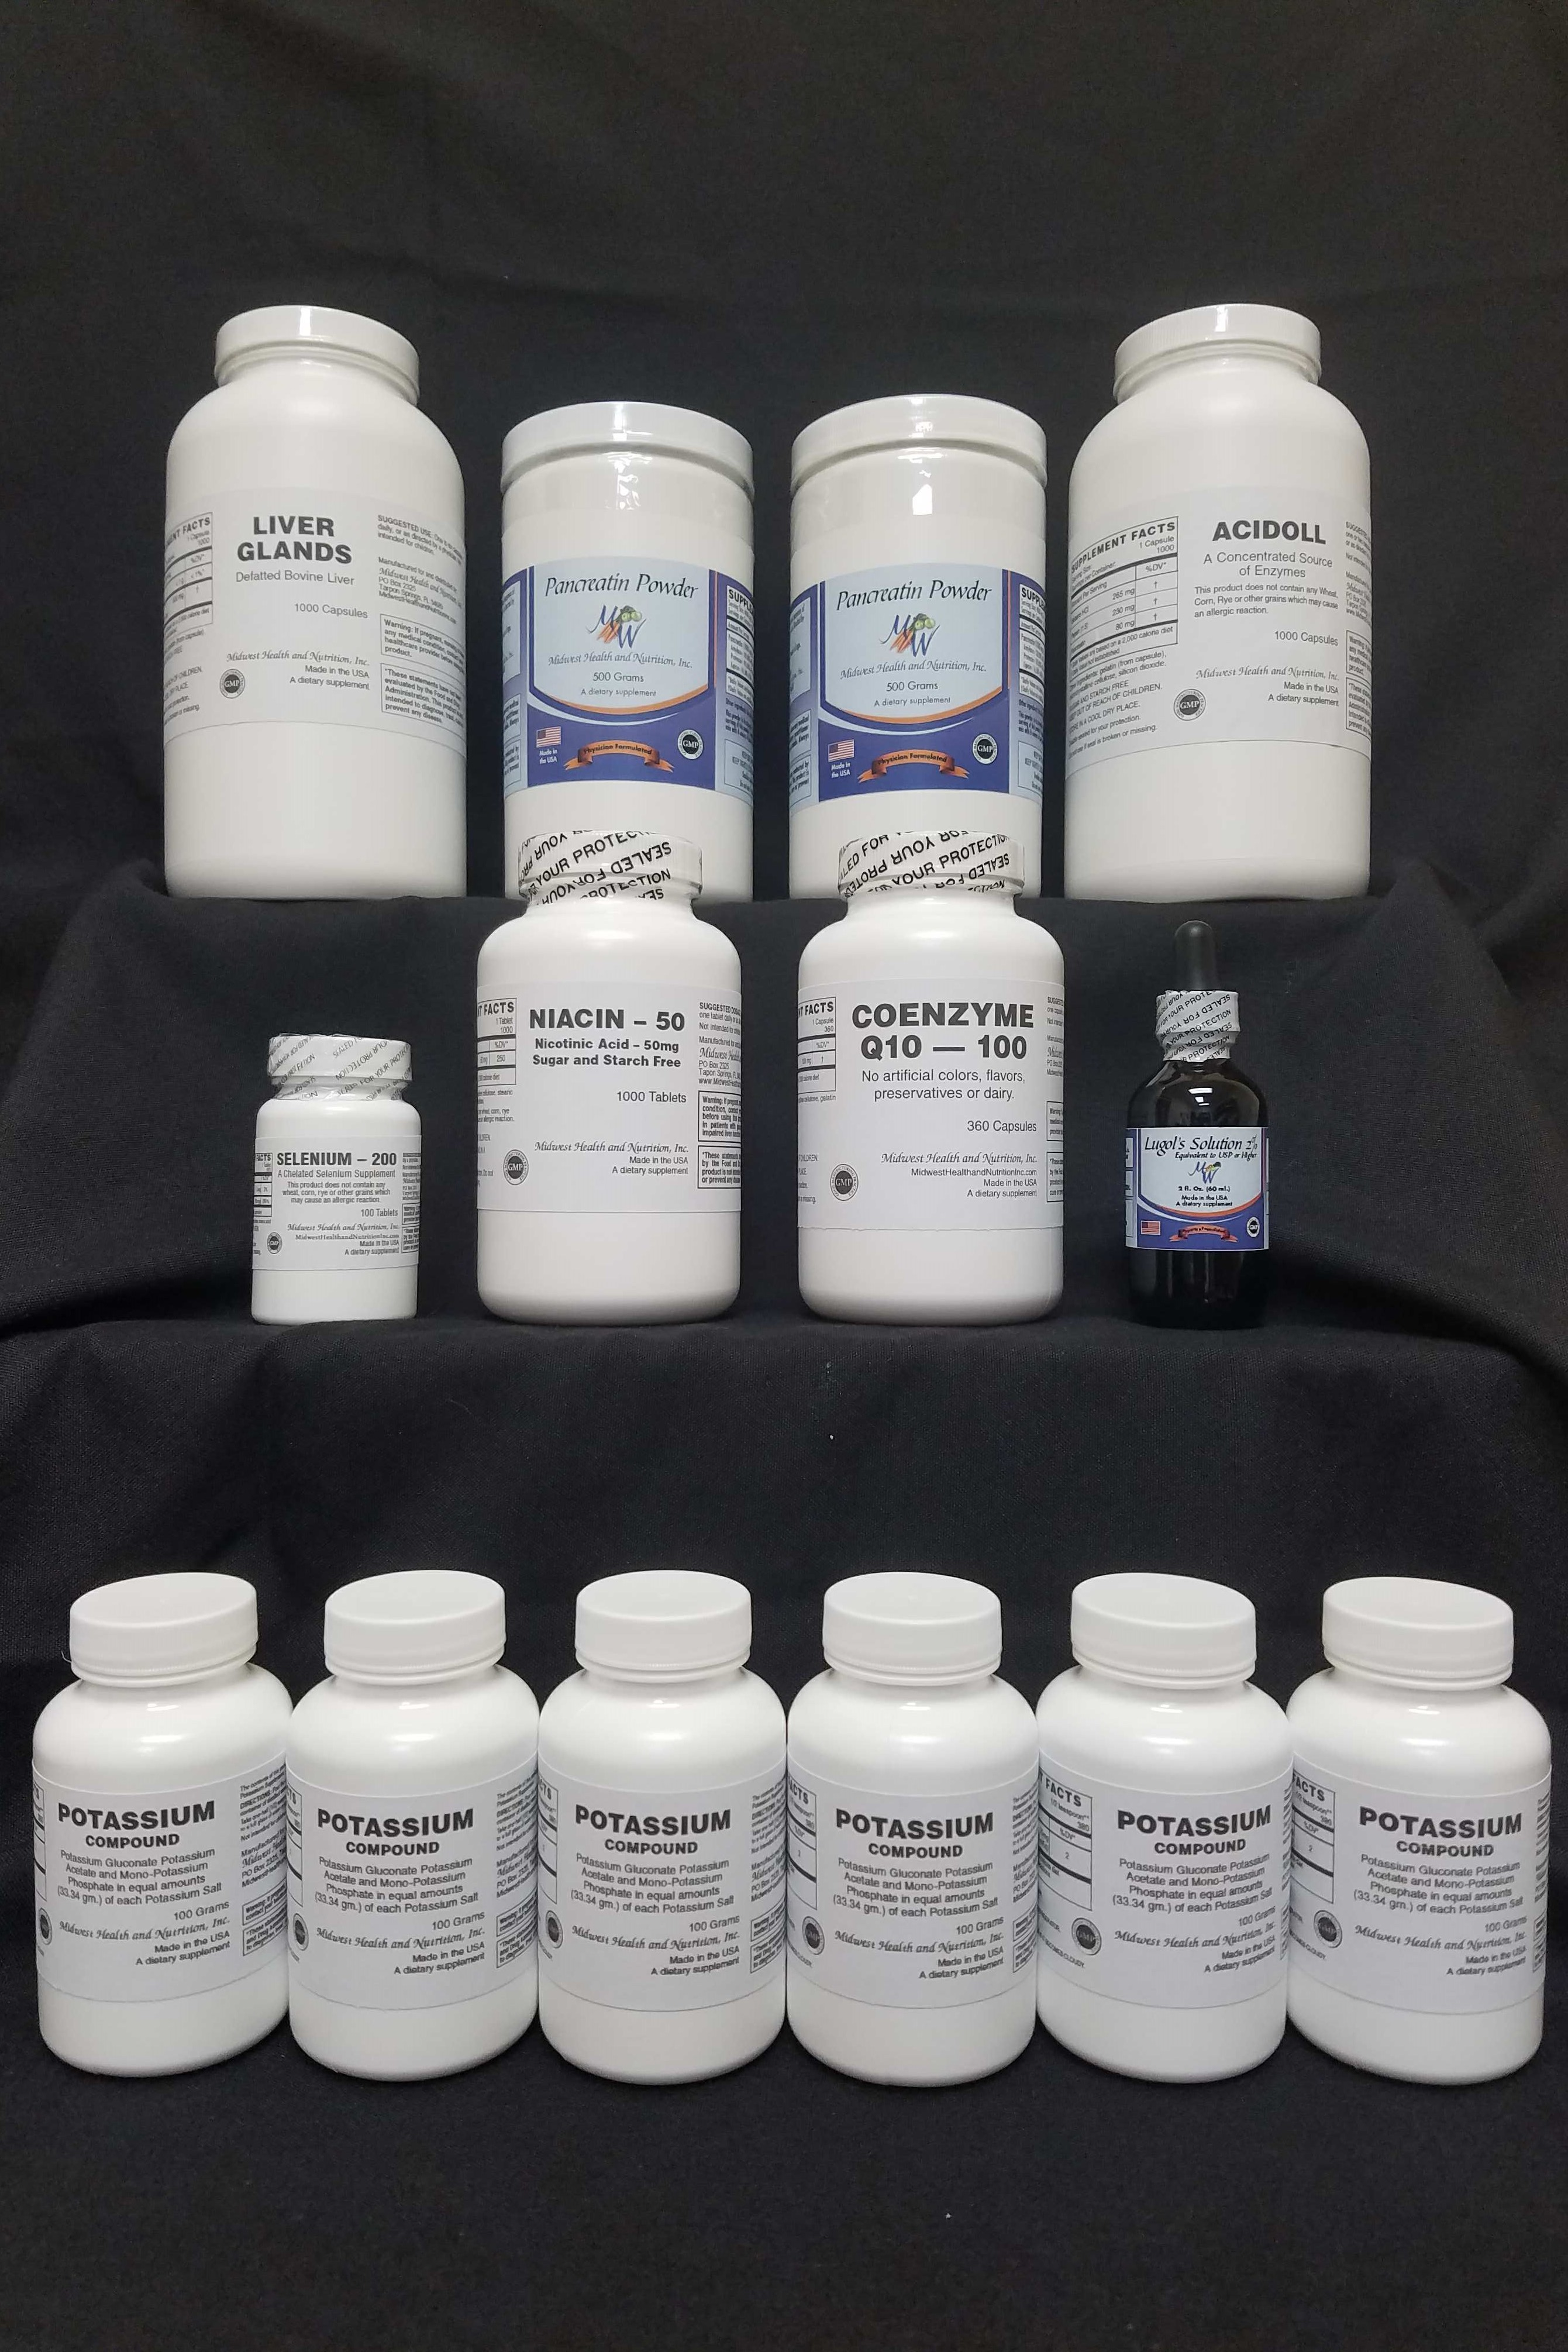 90 Day Gerson Advanced Protocol Kit 2 BEST VALUE!!!! Free shipping in USA!!  BIG SAVINGS OVER RETAIL PRICES!